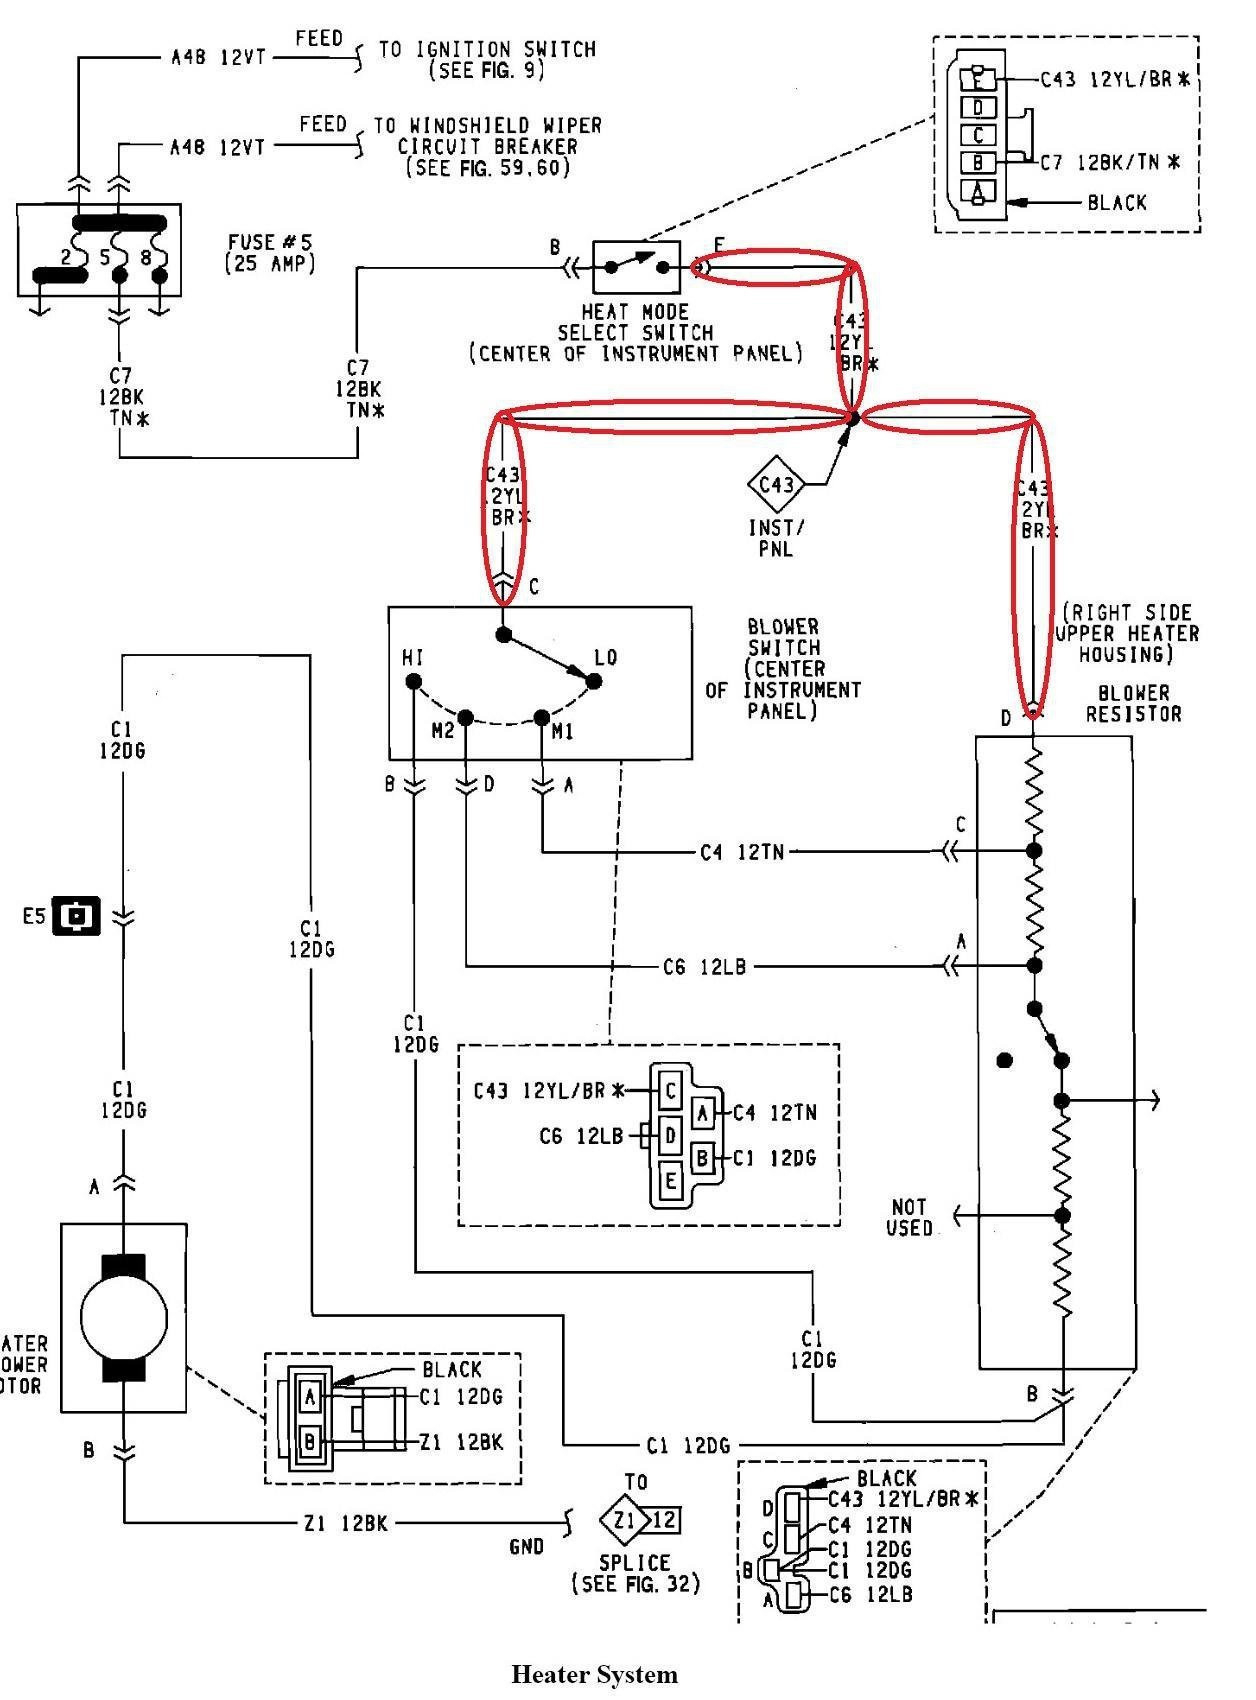 36 Volt Club Car Golf Cart Wiring Diagram Unique Ezgo Txt 36 Volt - Ezgo Txt Wiring Diagram